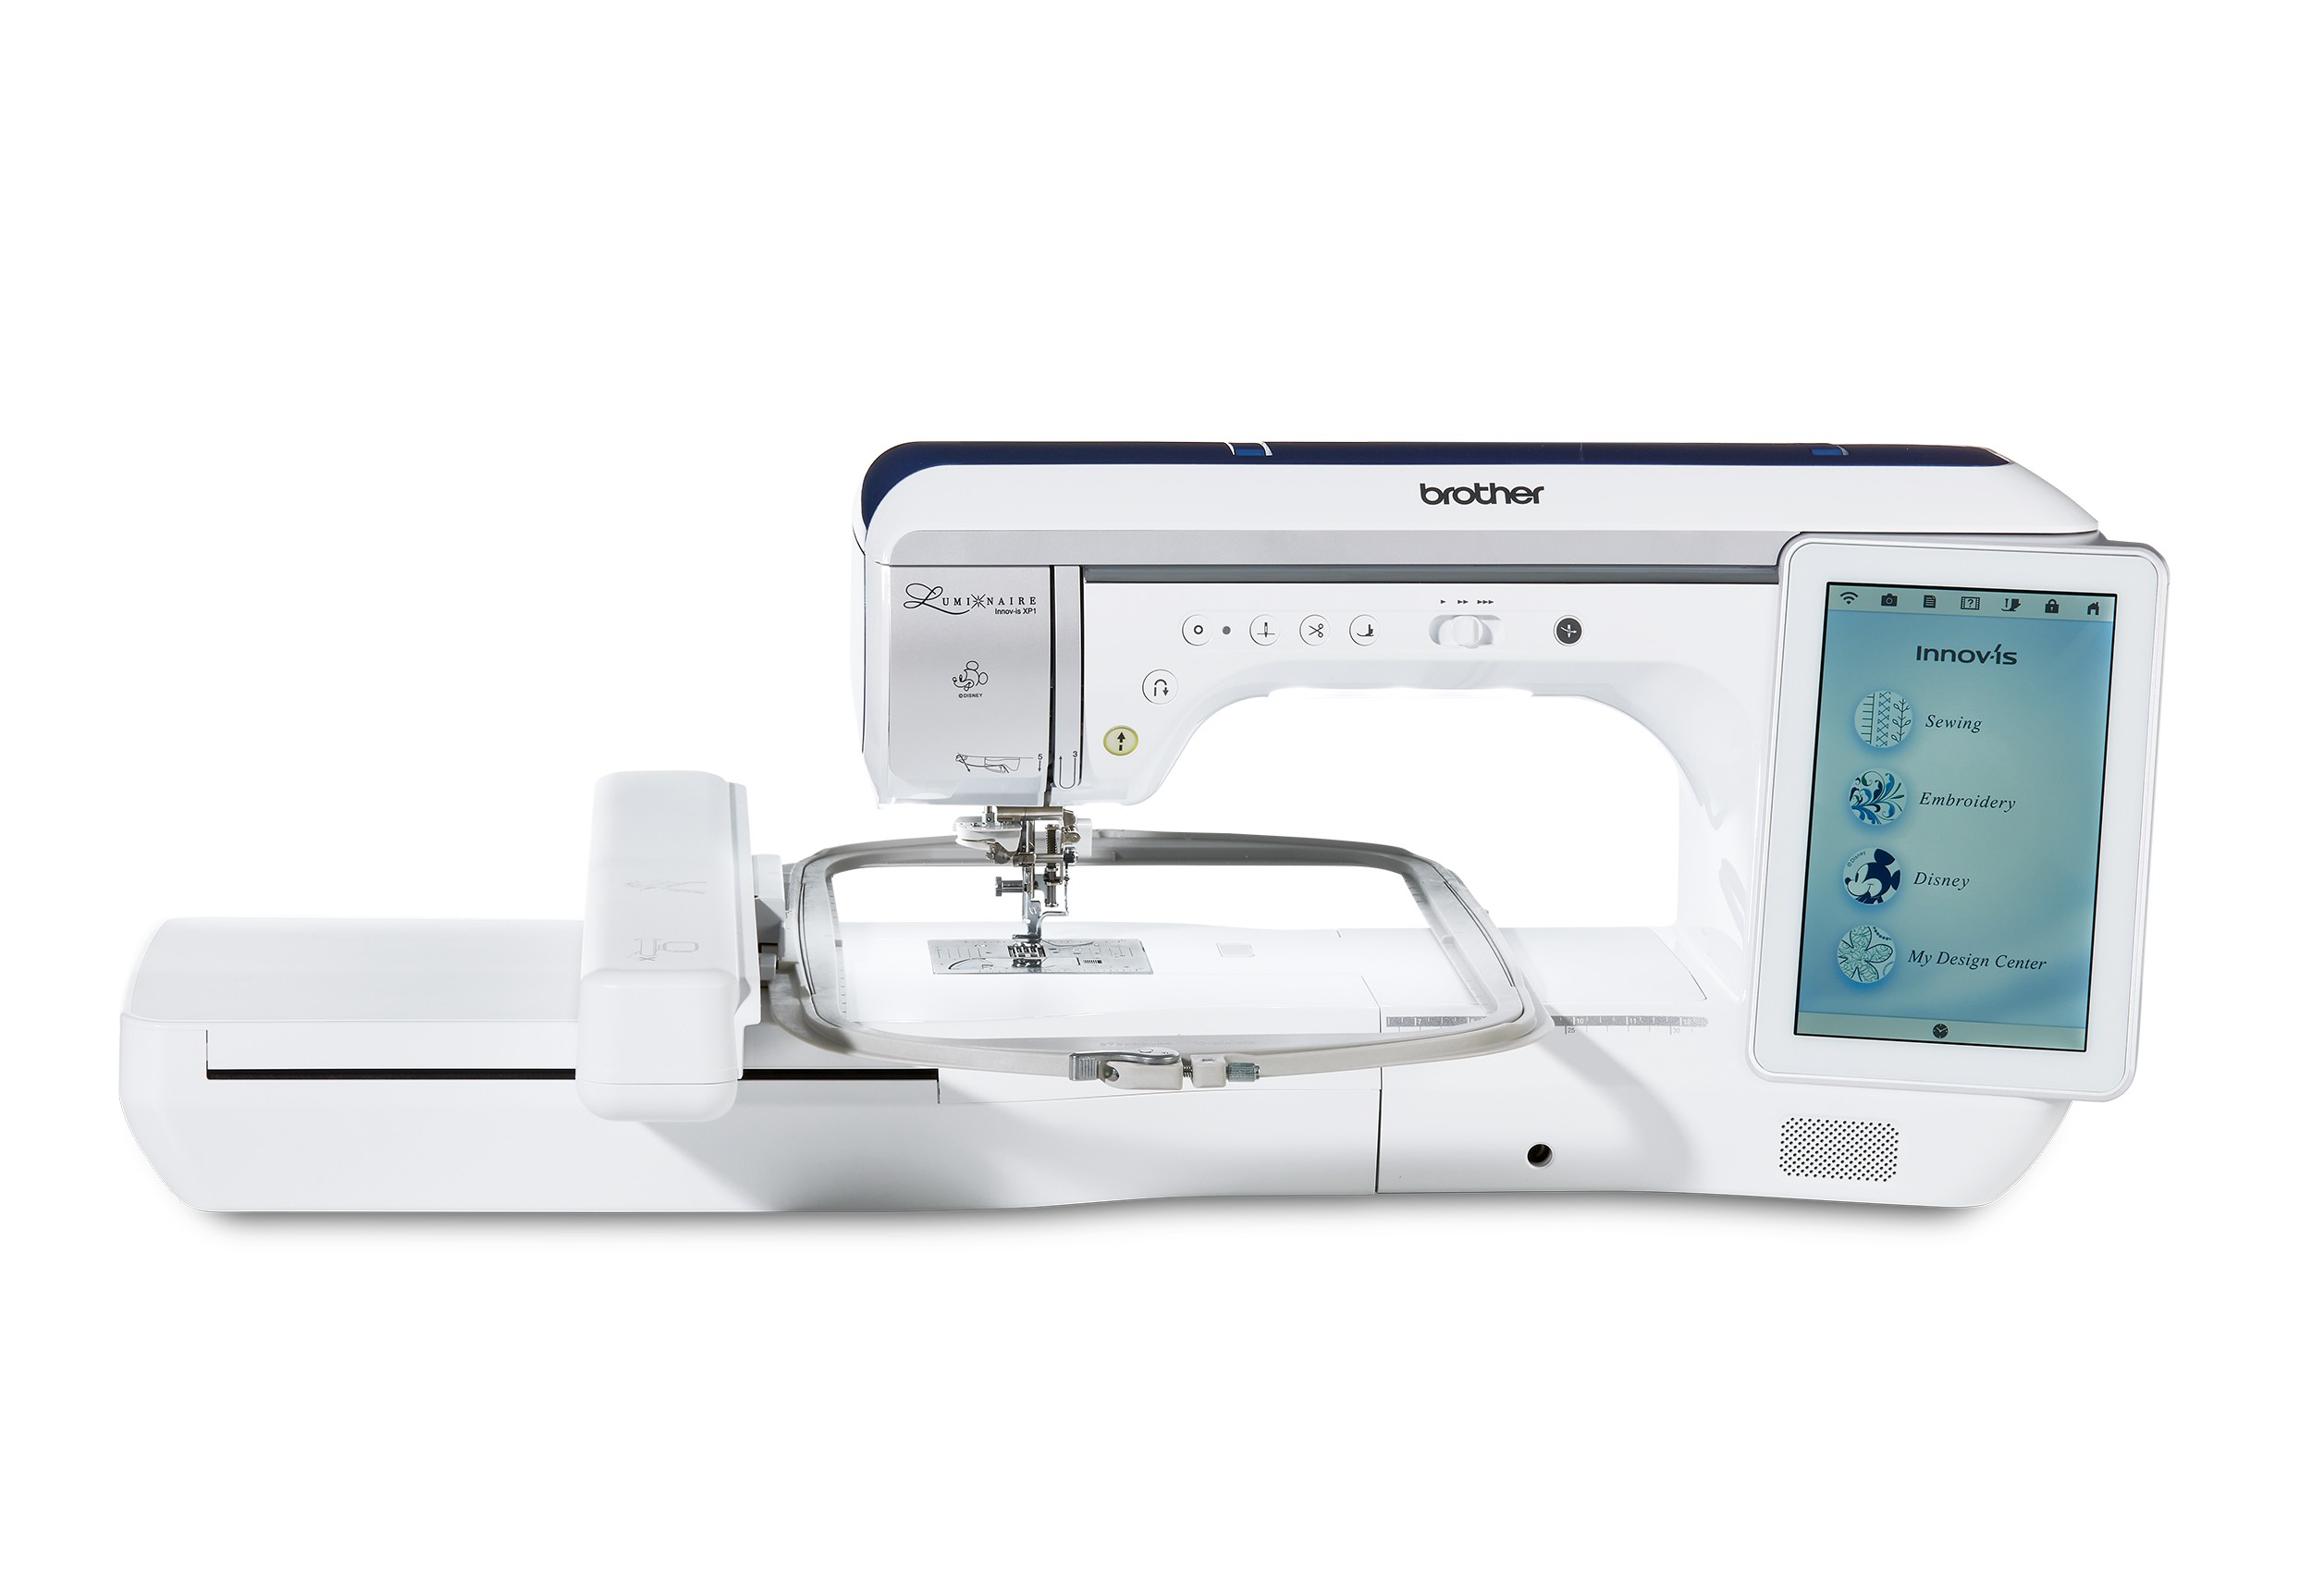 BROTHER LUMINAIRE XP1 SEWING & EMBROIDERY MACHINE | Sewing Machines Direct